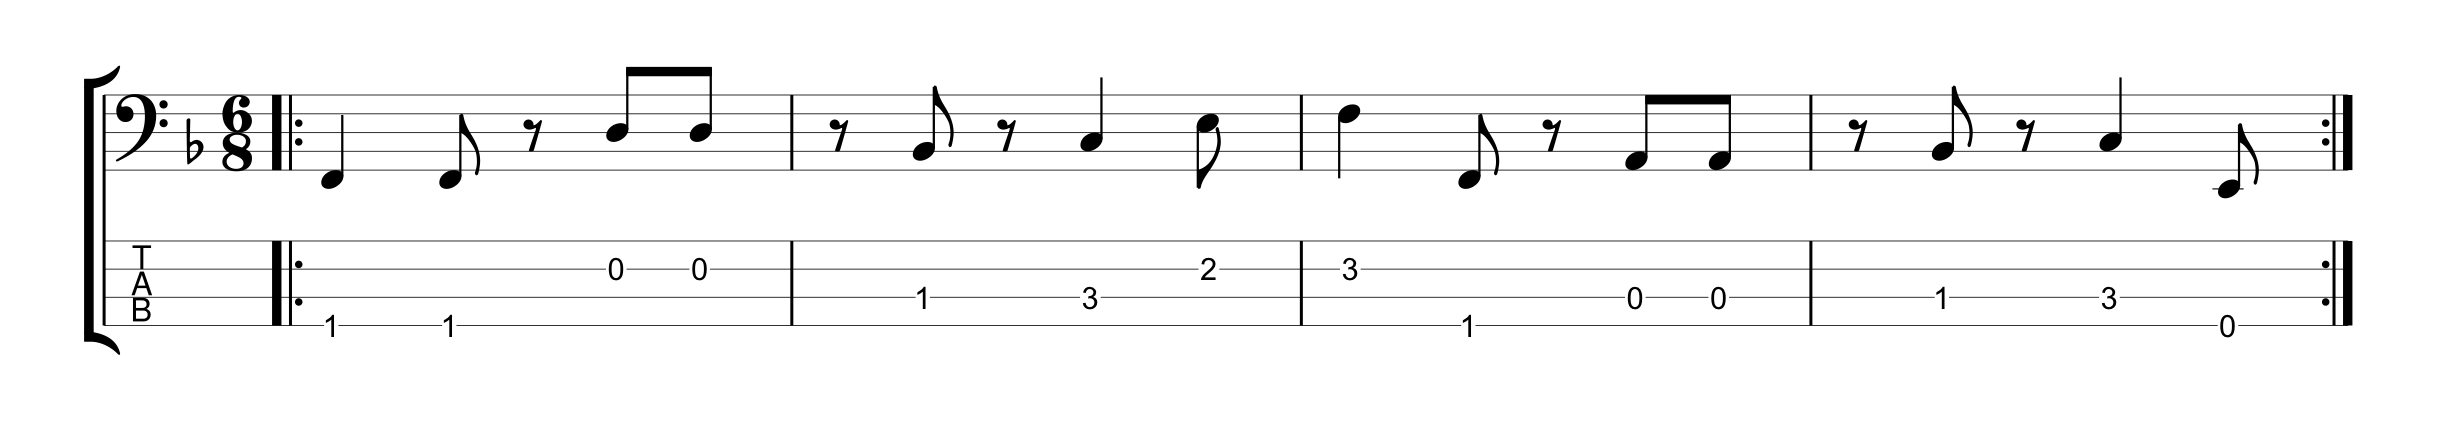 6/8 Time Signature - Example 4